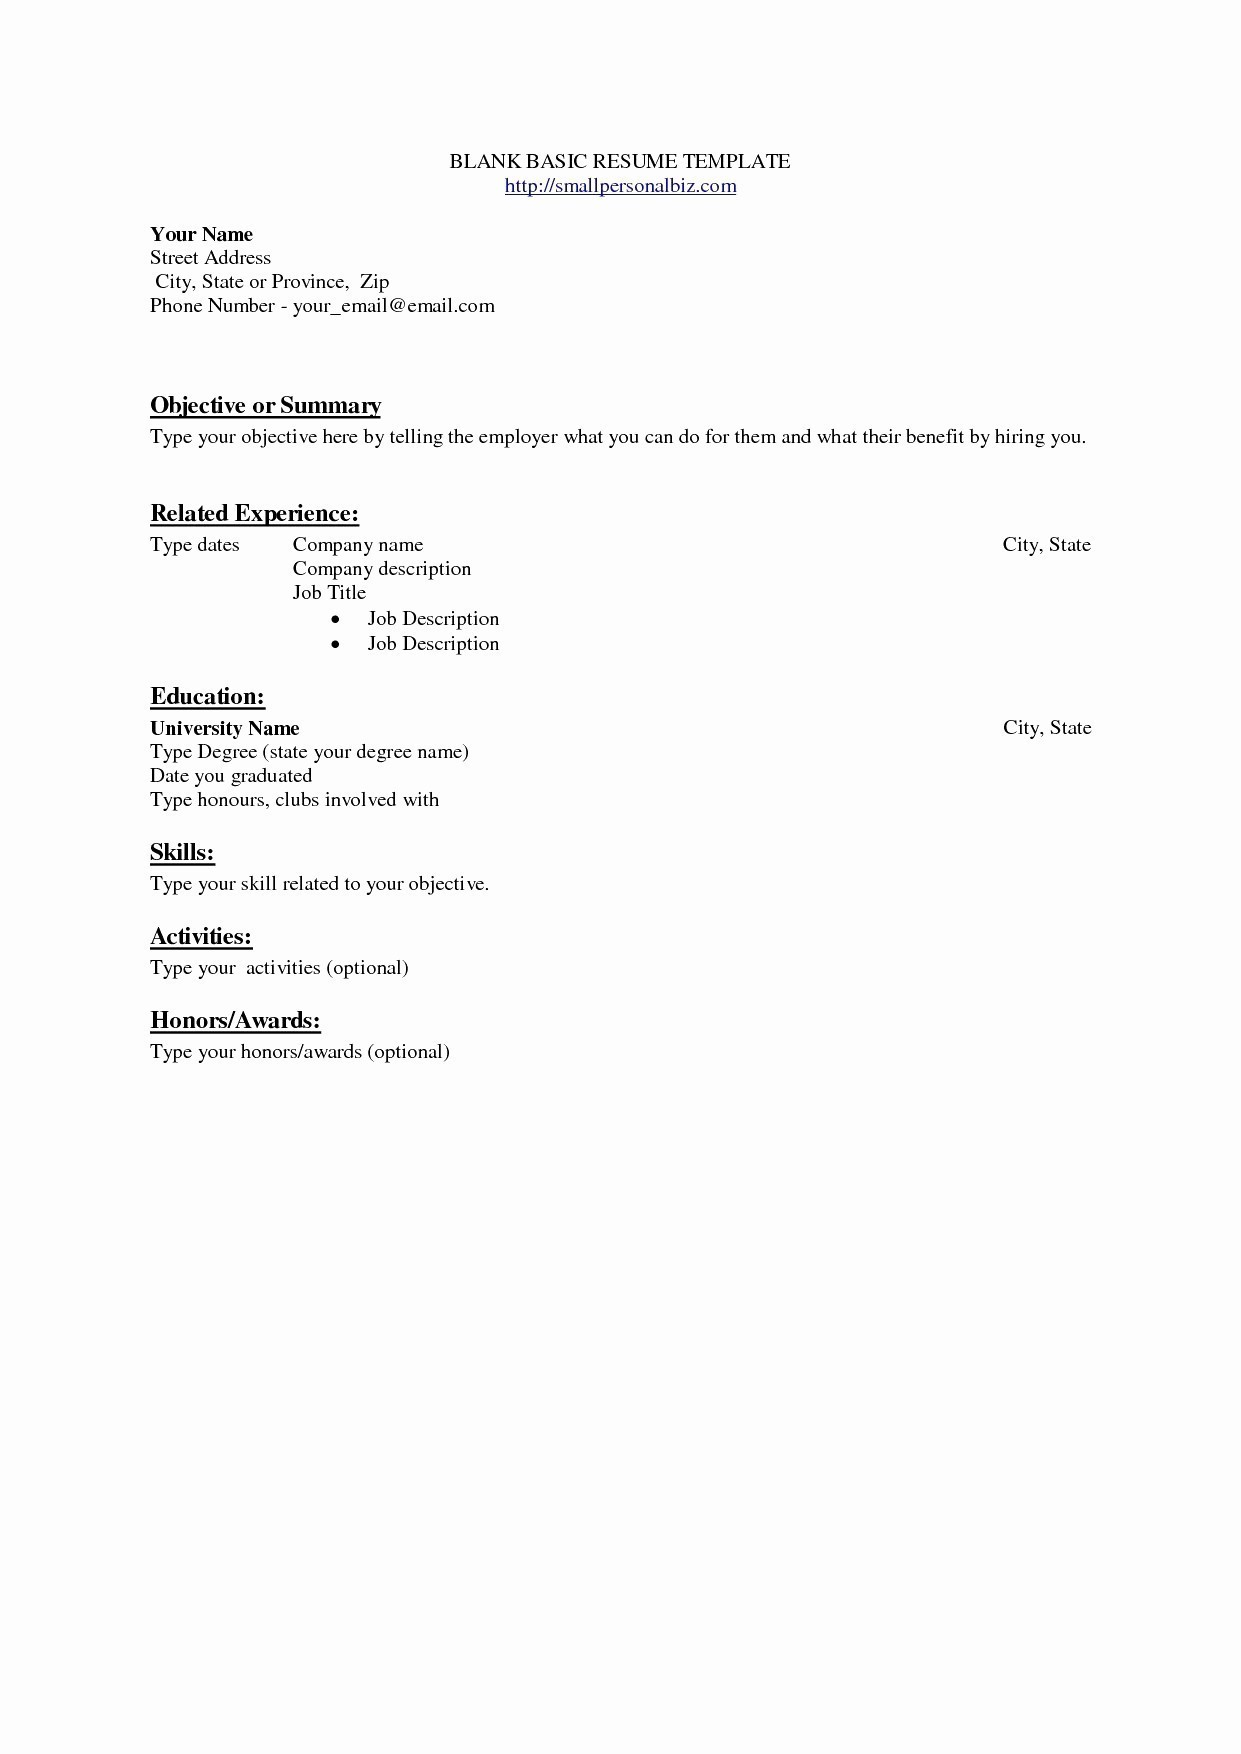 Personal Skill for Resume - What Skills to List Resume New Strengths to List Resume Lovely